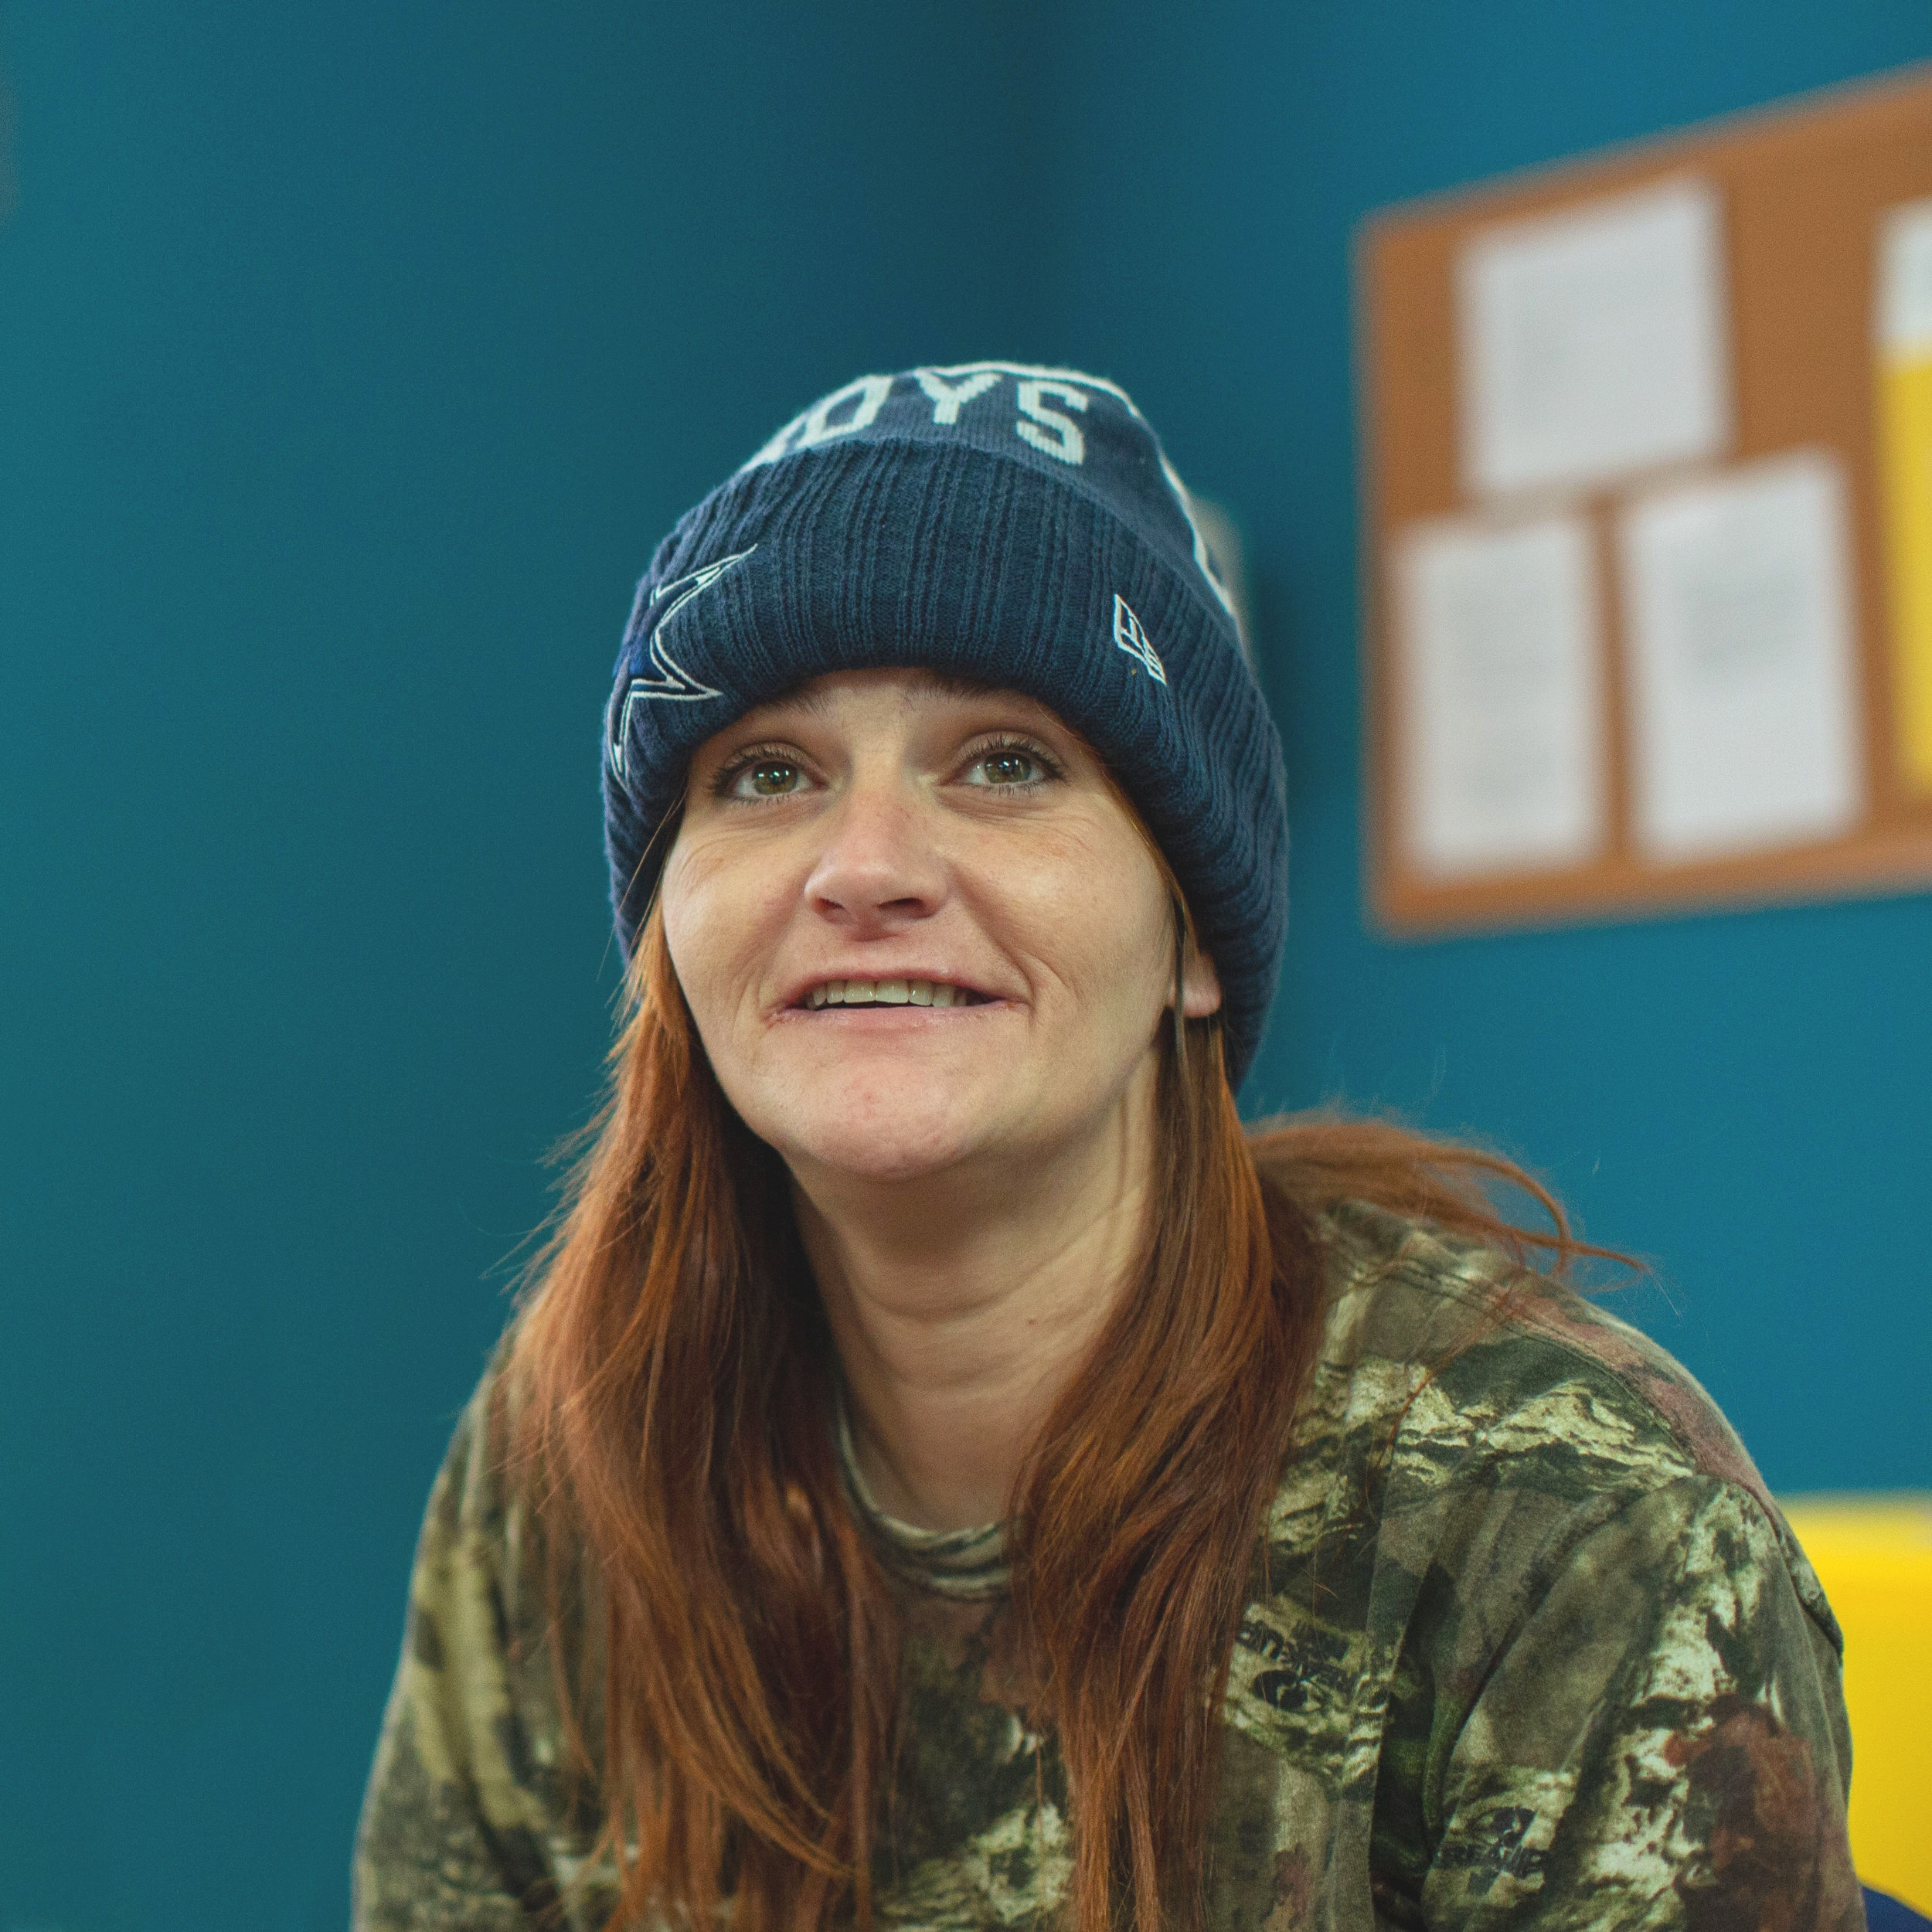 """Meet Charlotte, Groups Recover Together Member - """"Suboxone, along with therapy, like this group, it saved my life. And I don't get high on Suboxone, I get normal. I don't wake up in the morning and think, where am I going to get my next fix and then have to hustle. I was sick and tired of being sick and tired."""""""